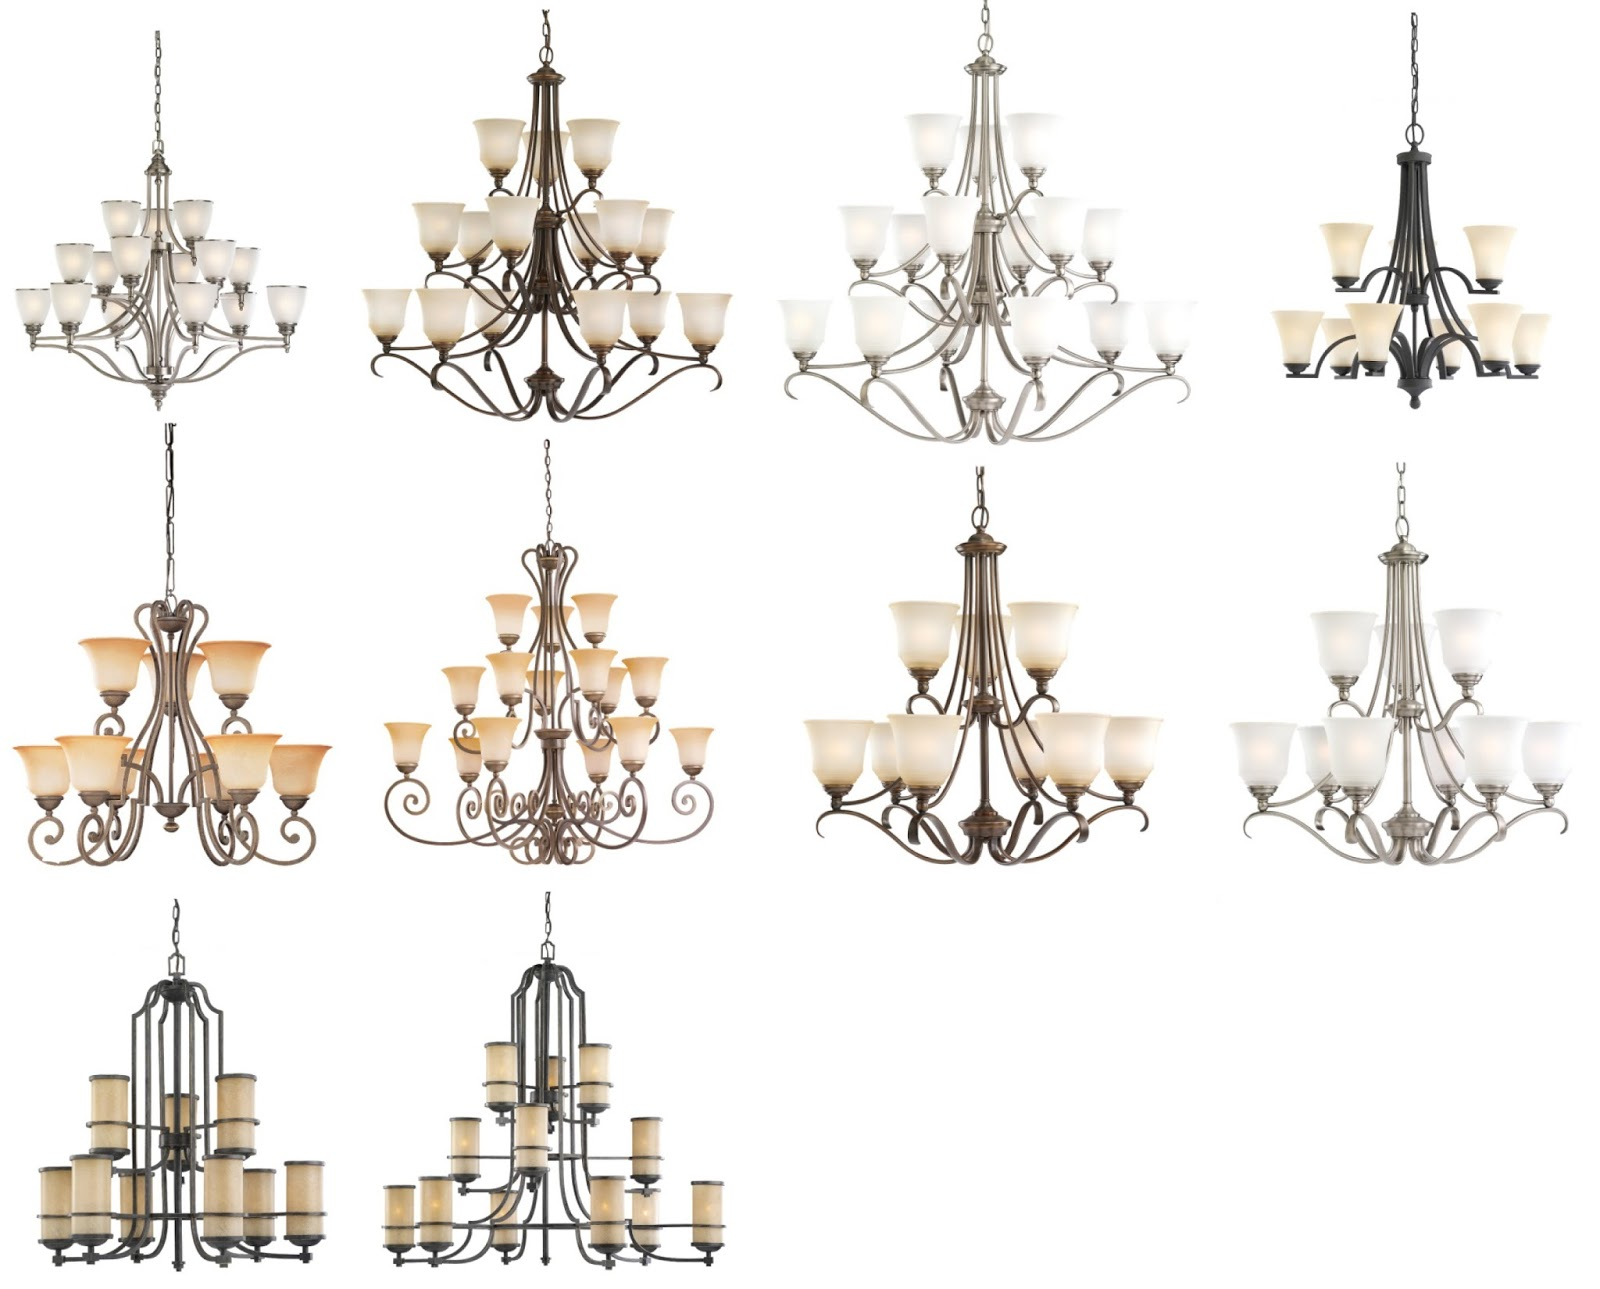 Unique Collections Of Cheap Chandeliers: Different Types of Chandeliers That You Want To Have At ...